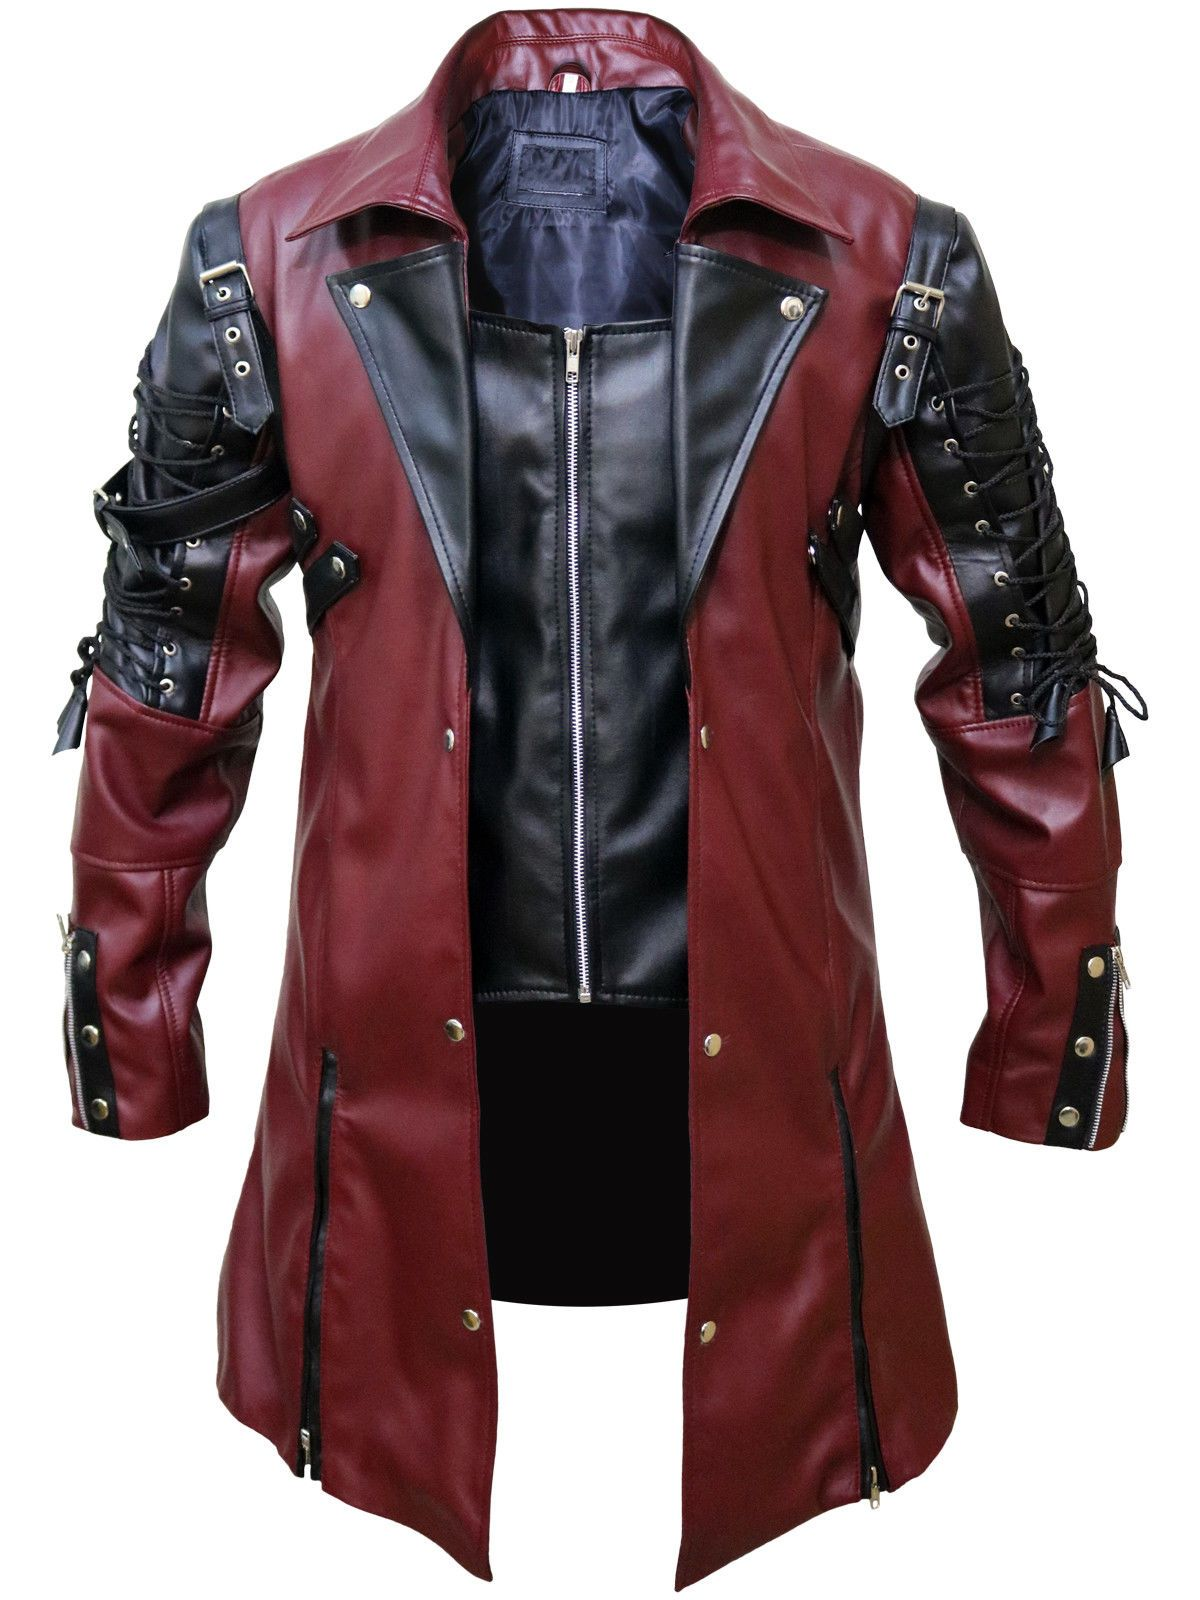 01126bdd917e2 Details about Mens Steampunk Gothic Leather Maroon Coat Jacket in ...